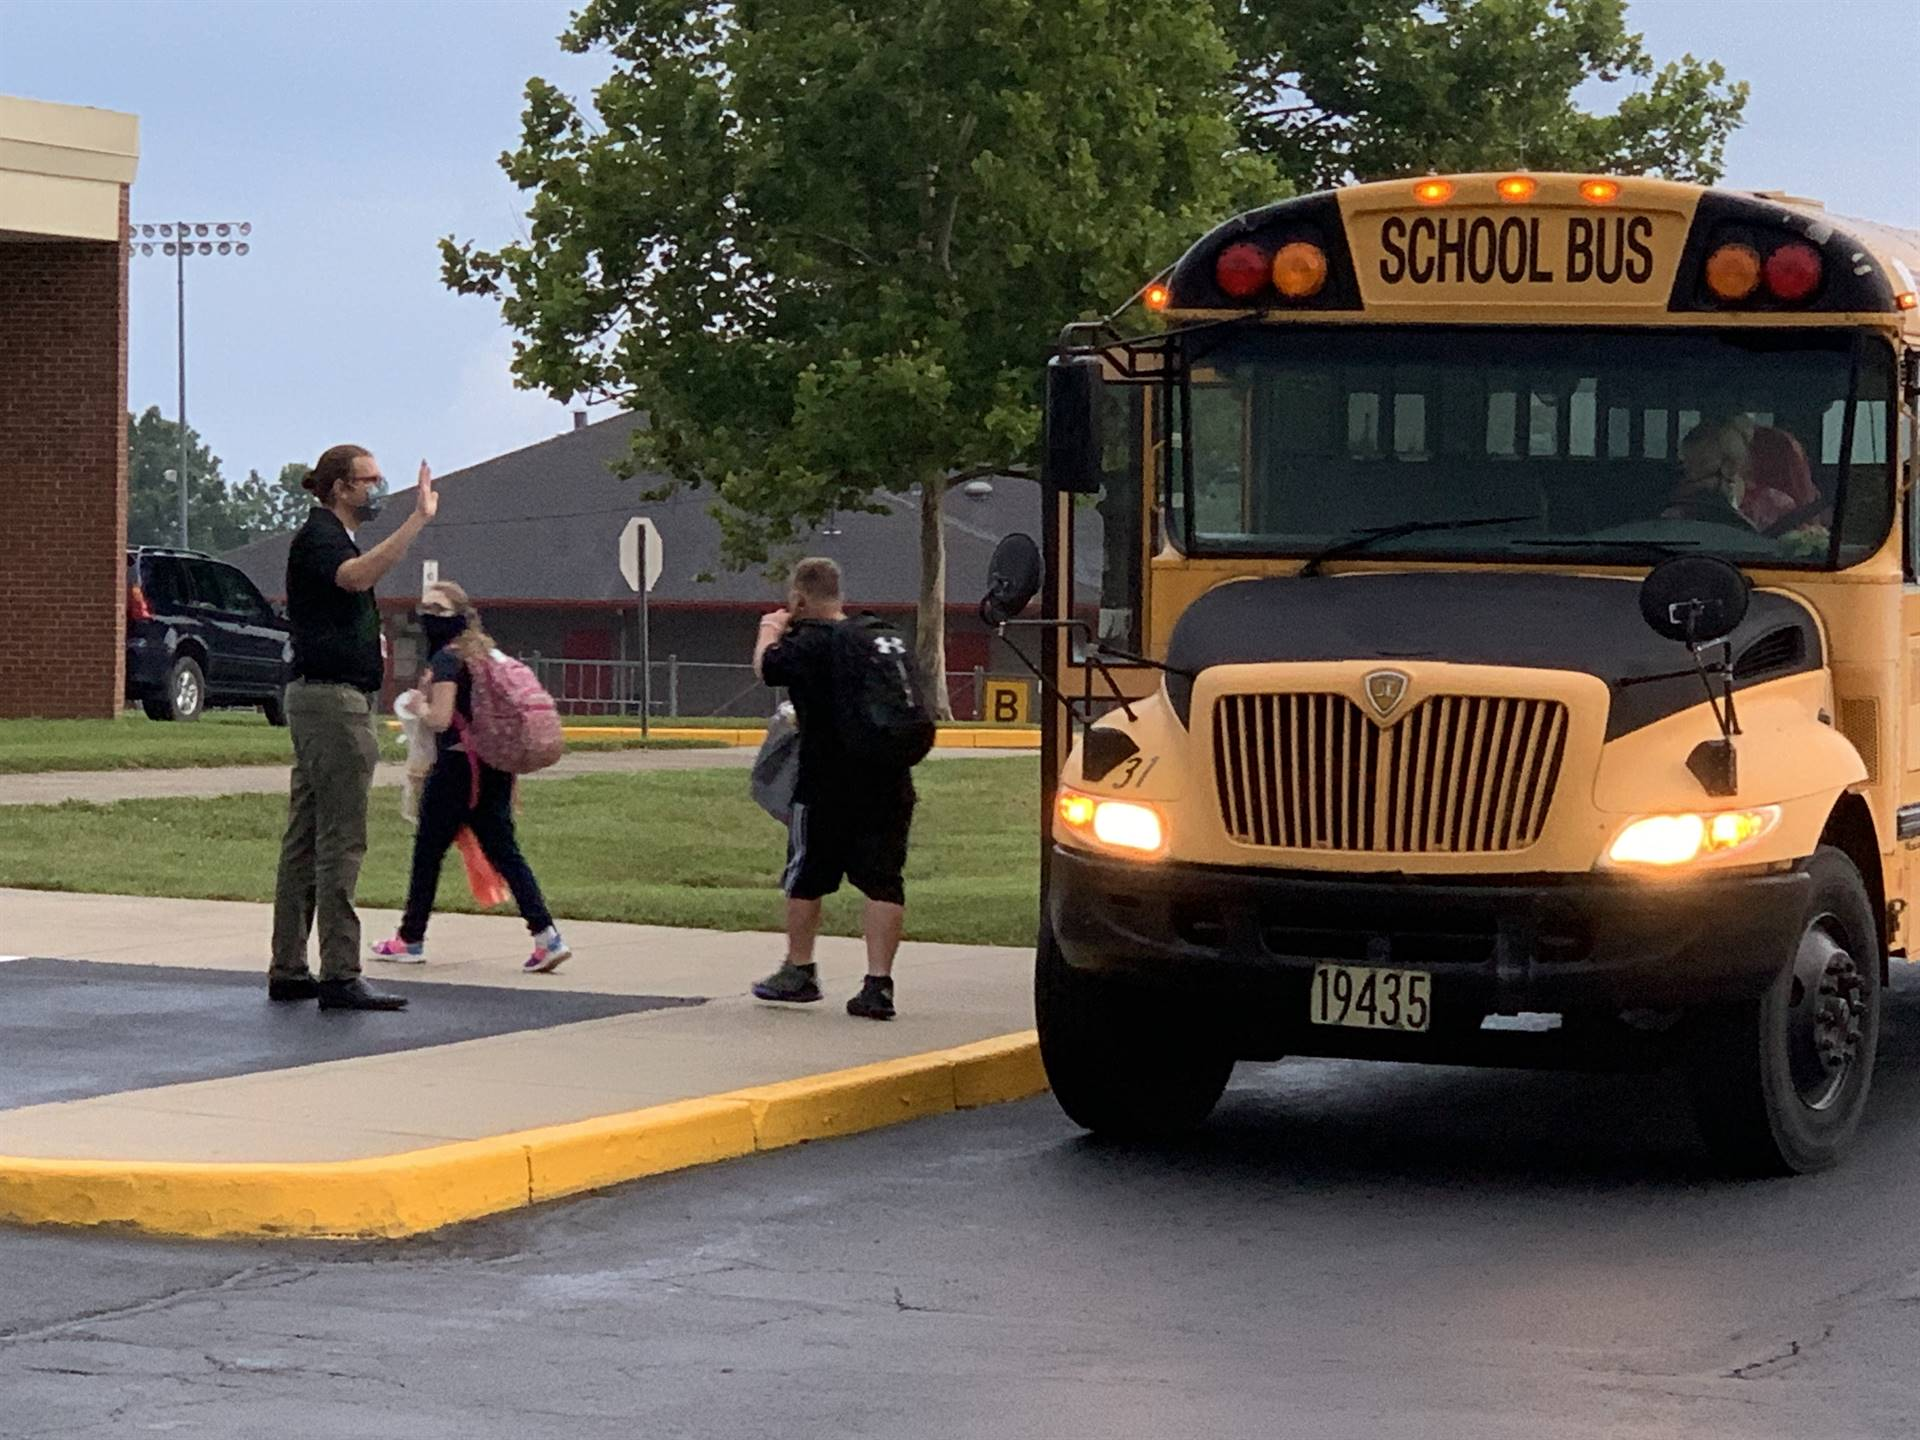 Teacher greets students exiting the bus